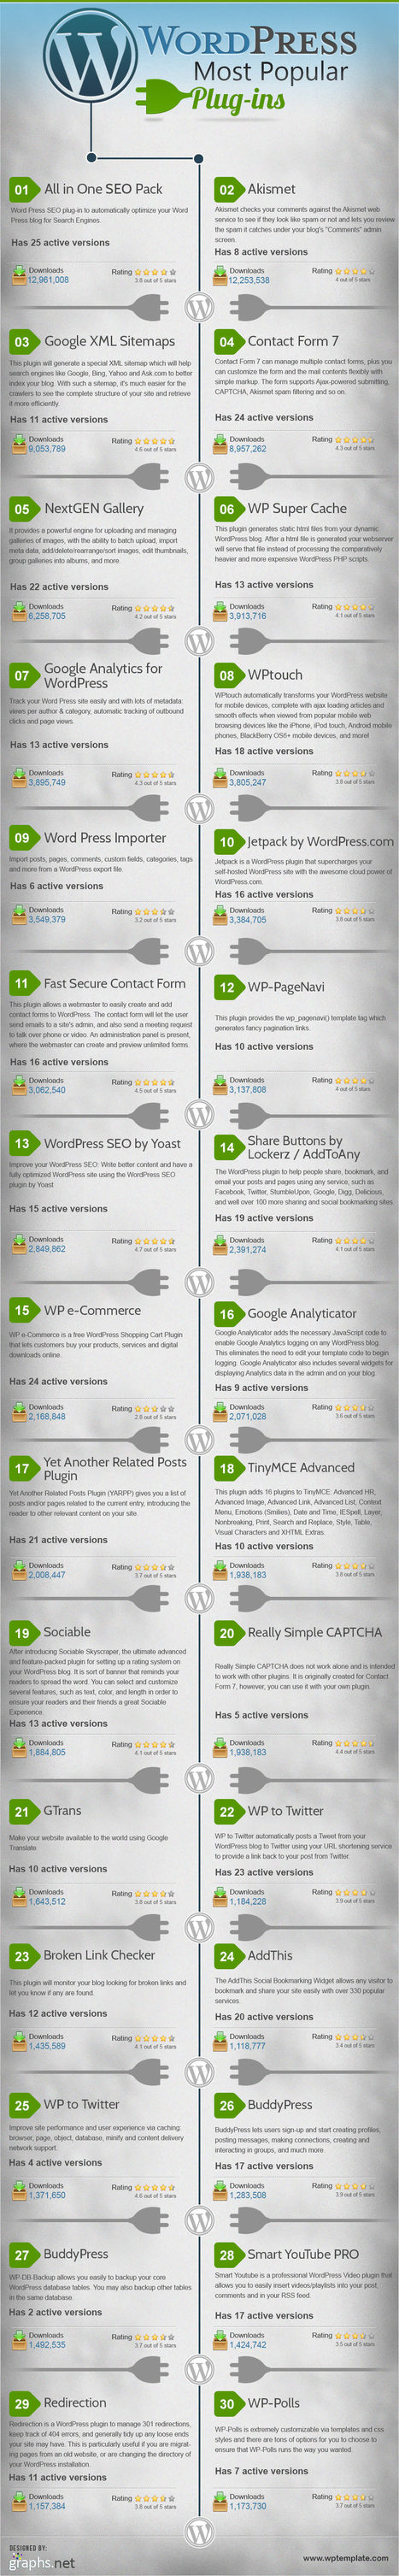 Most Popular WordPress Plugins [Infographic] | INFOGRAPHICS | Scoop.it